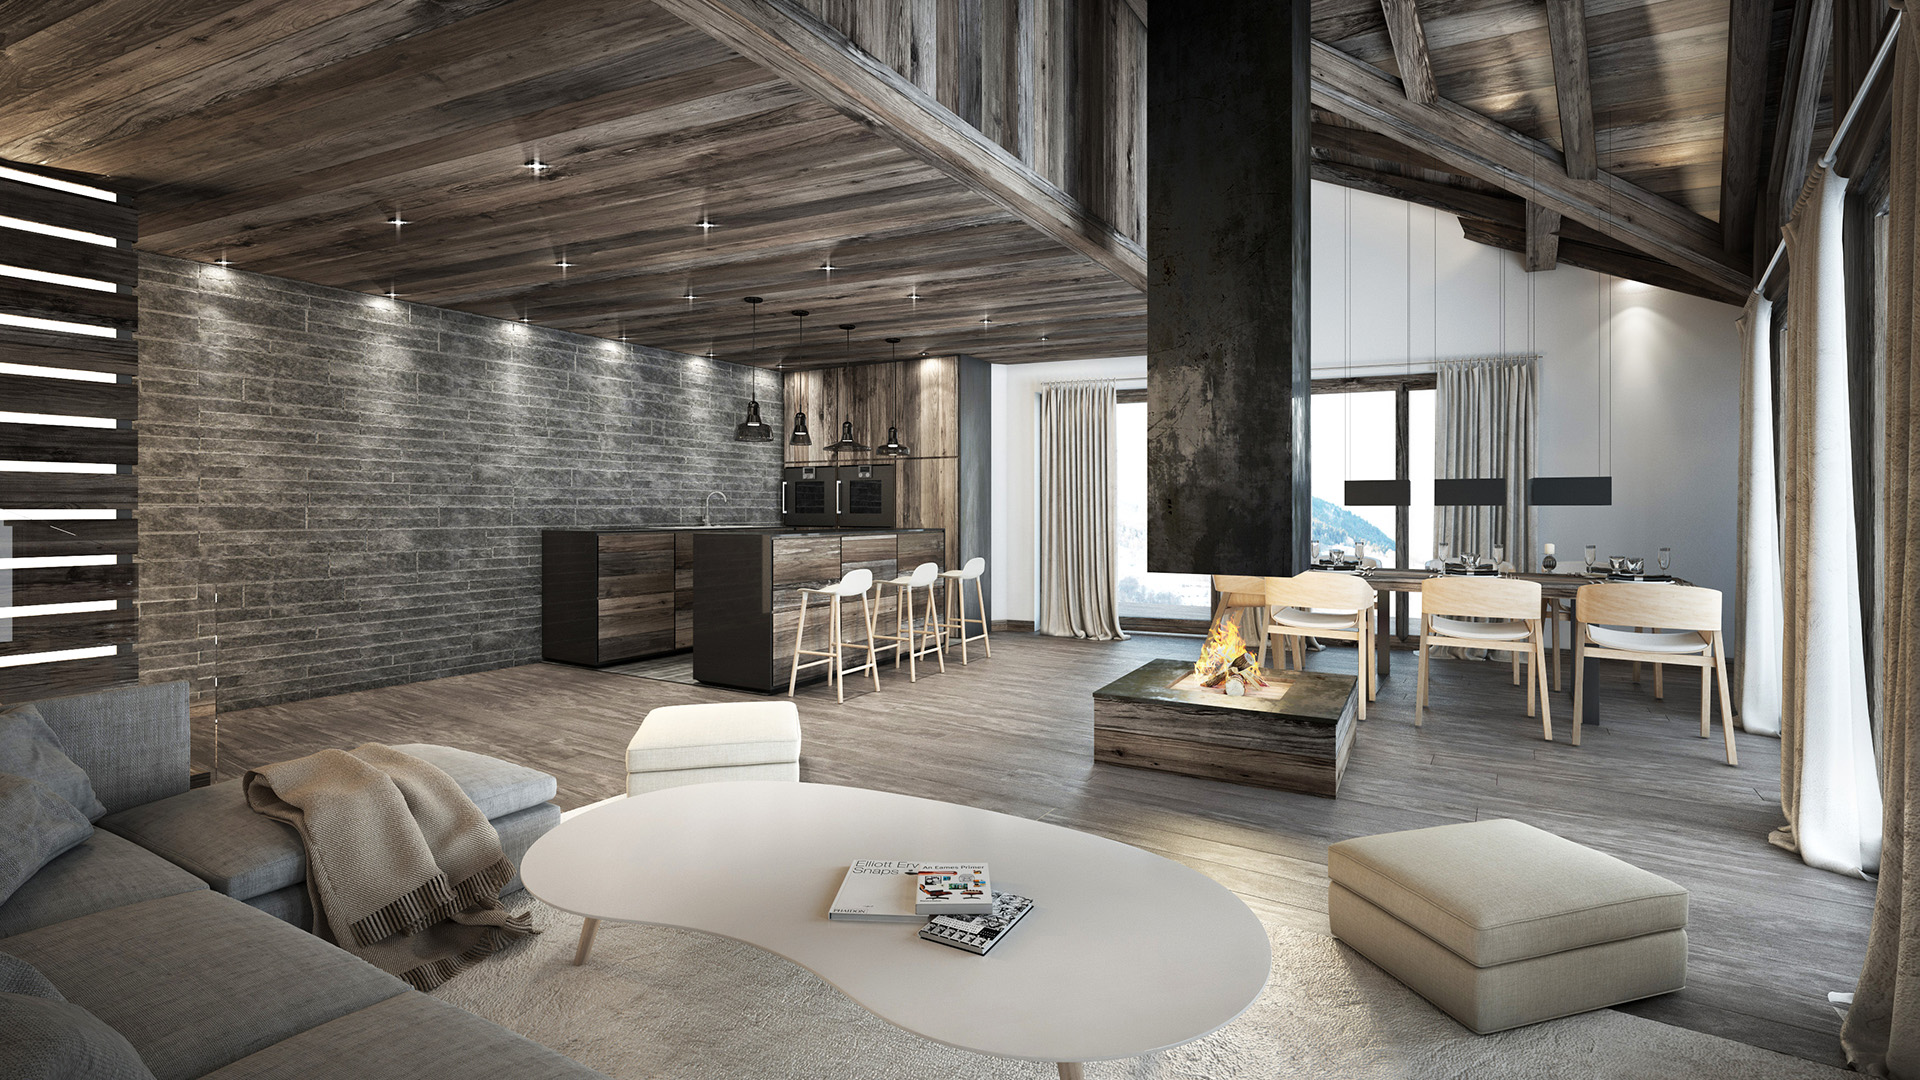 Creation of 3D still images of a luxurious apartment for the real estate promotion of the property.